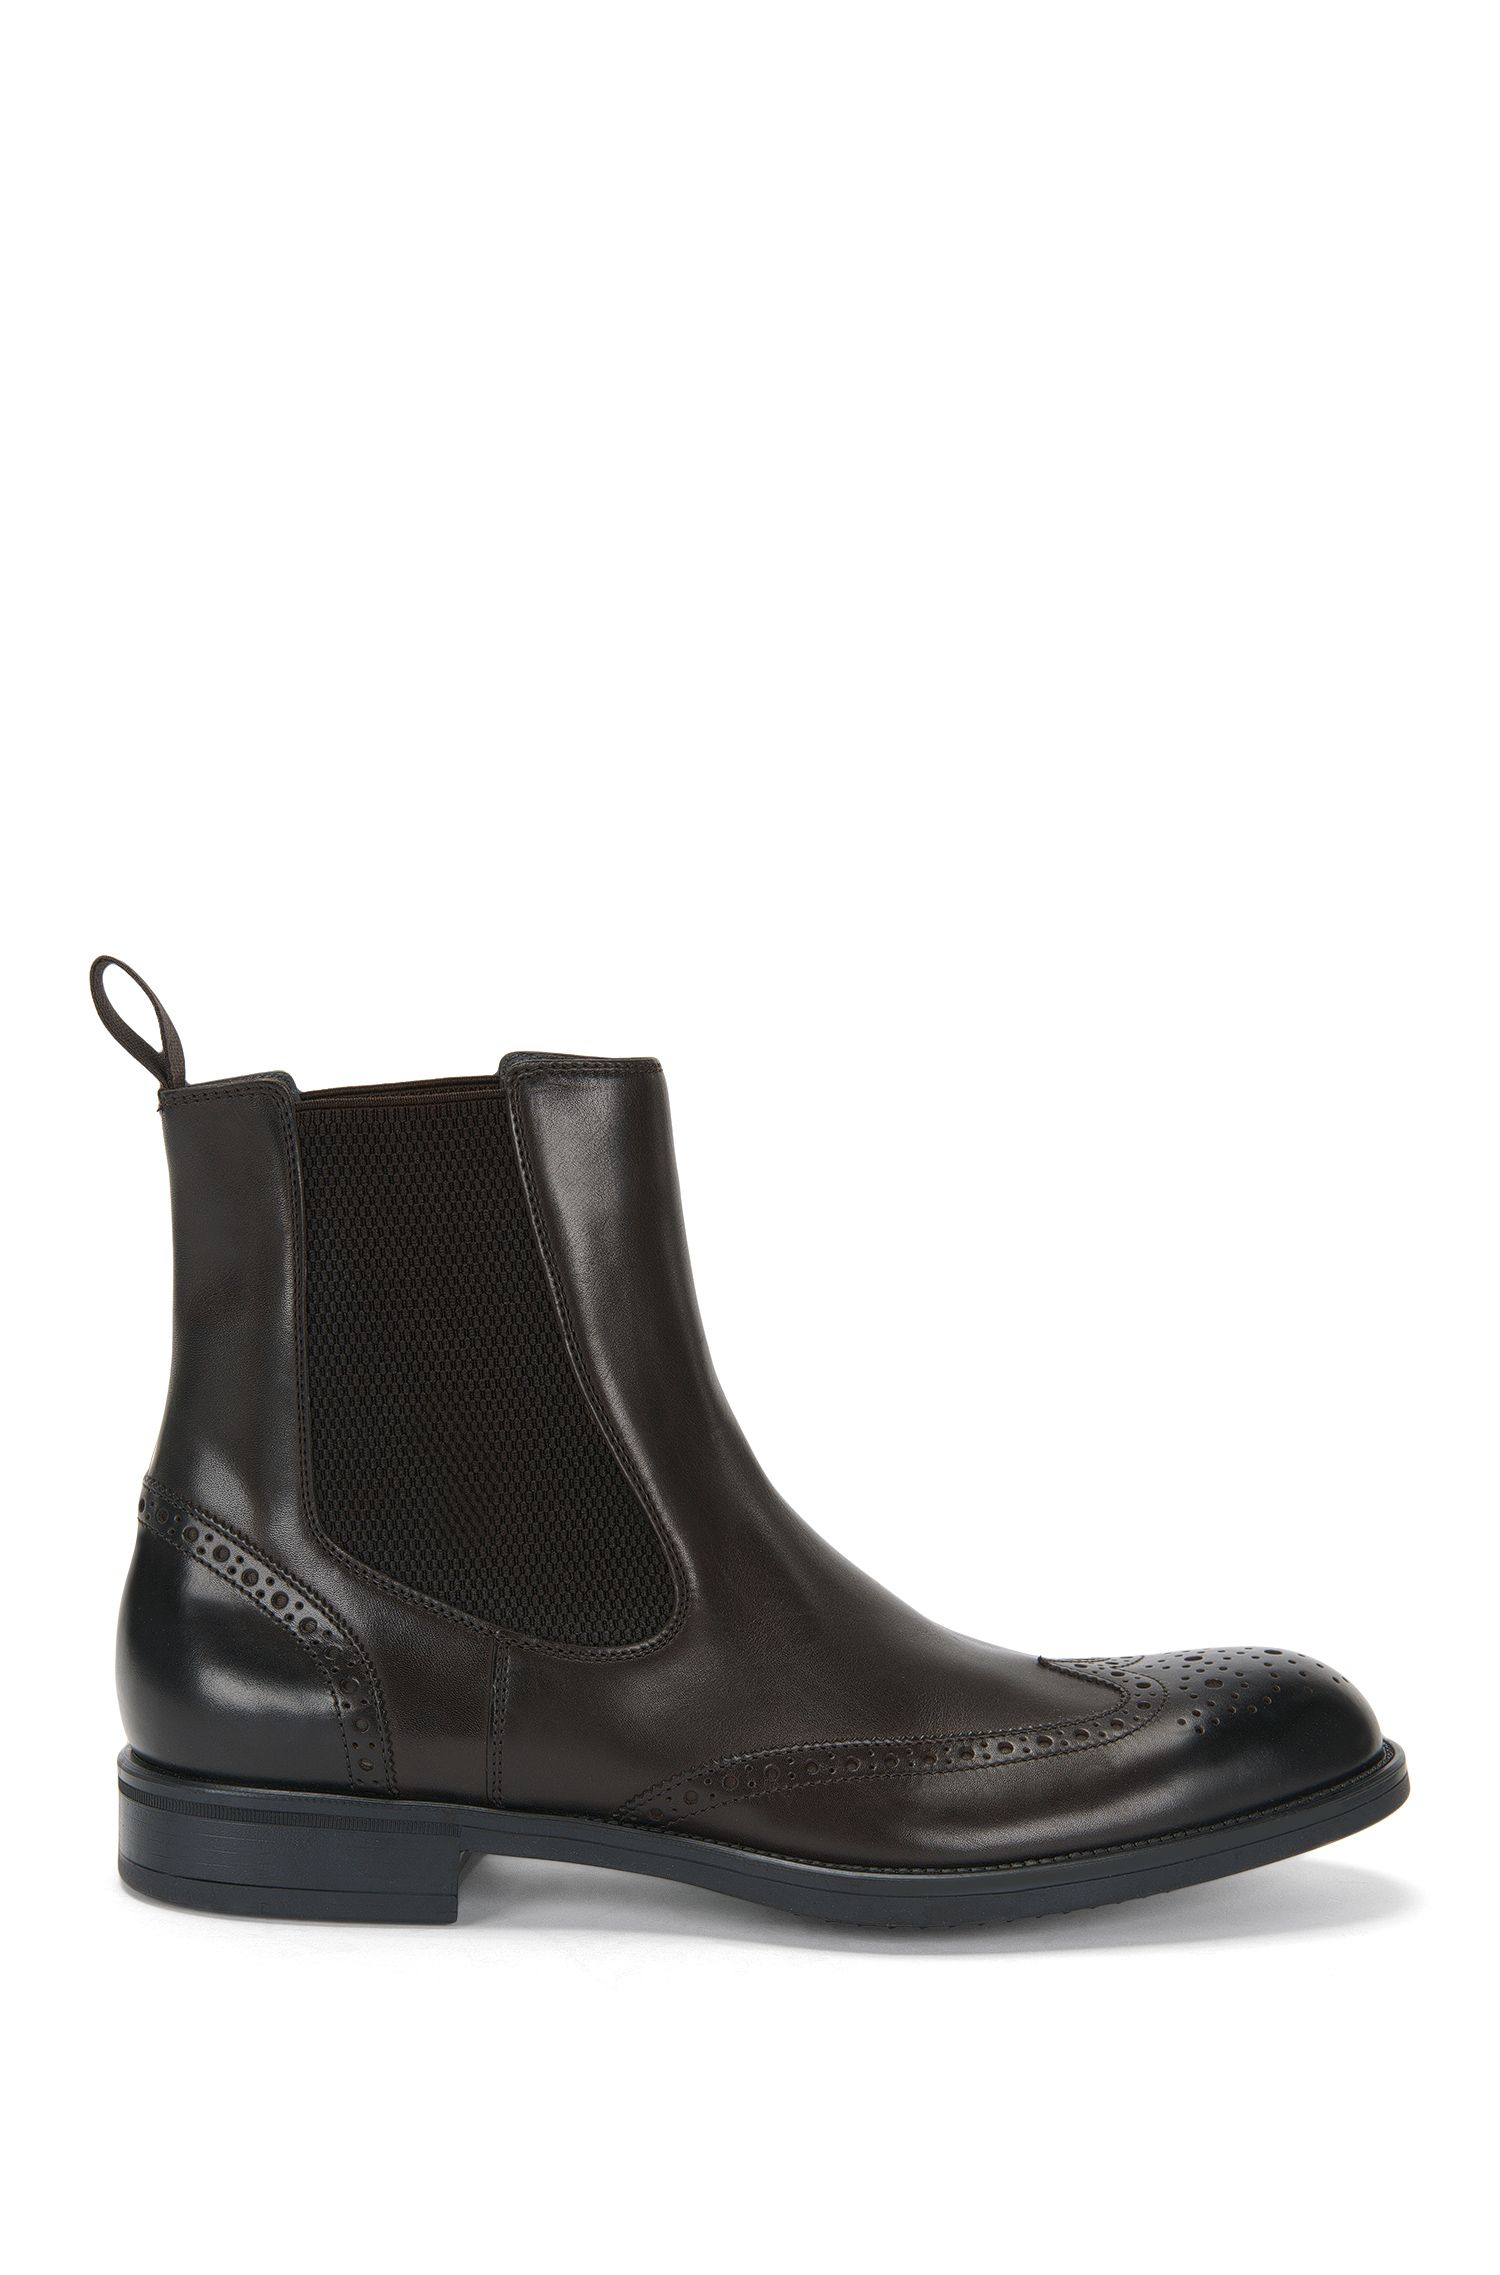 Leather Chelsea boots with brogue patterning: 'Kenth_Cheb_ltwtb'